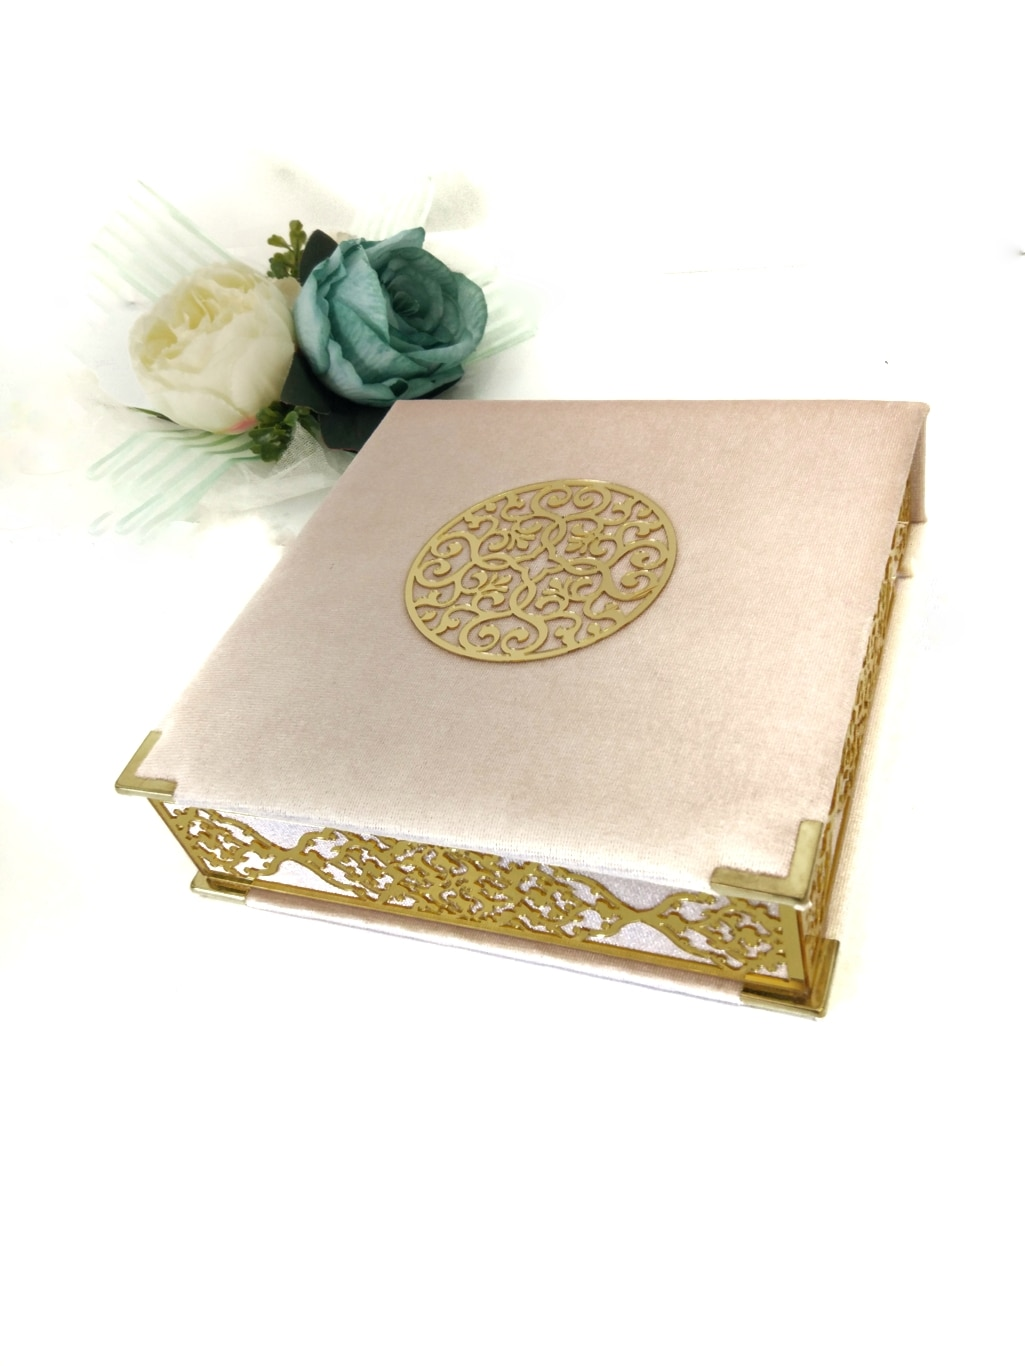 21 * 21 Ottoman Quran Set Islamic Gifts Velvet Coating On Wood Box Muslim Set Vedding Luxury Decoration Amin Favors Eid Mubarak